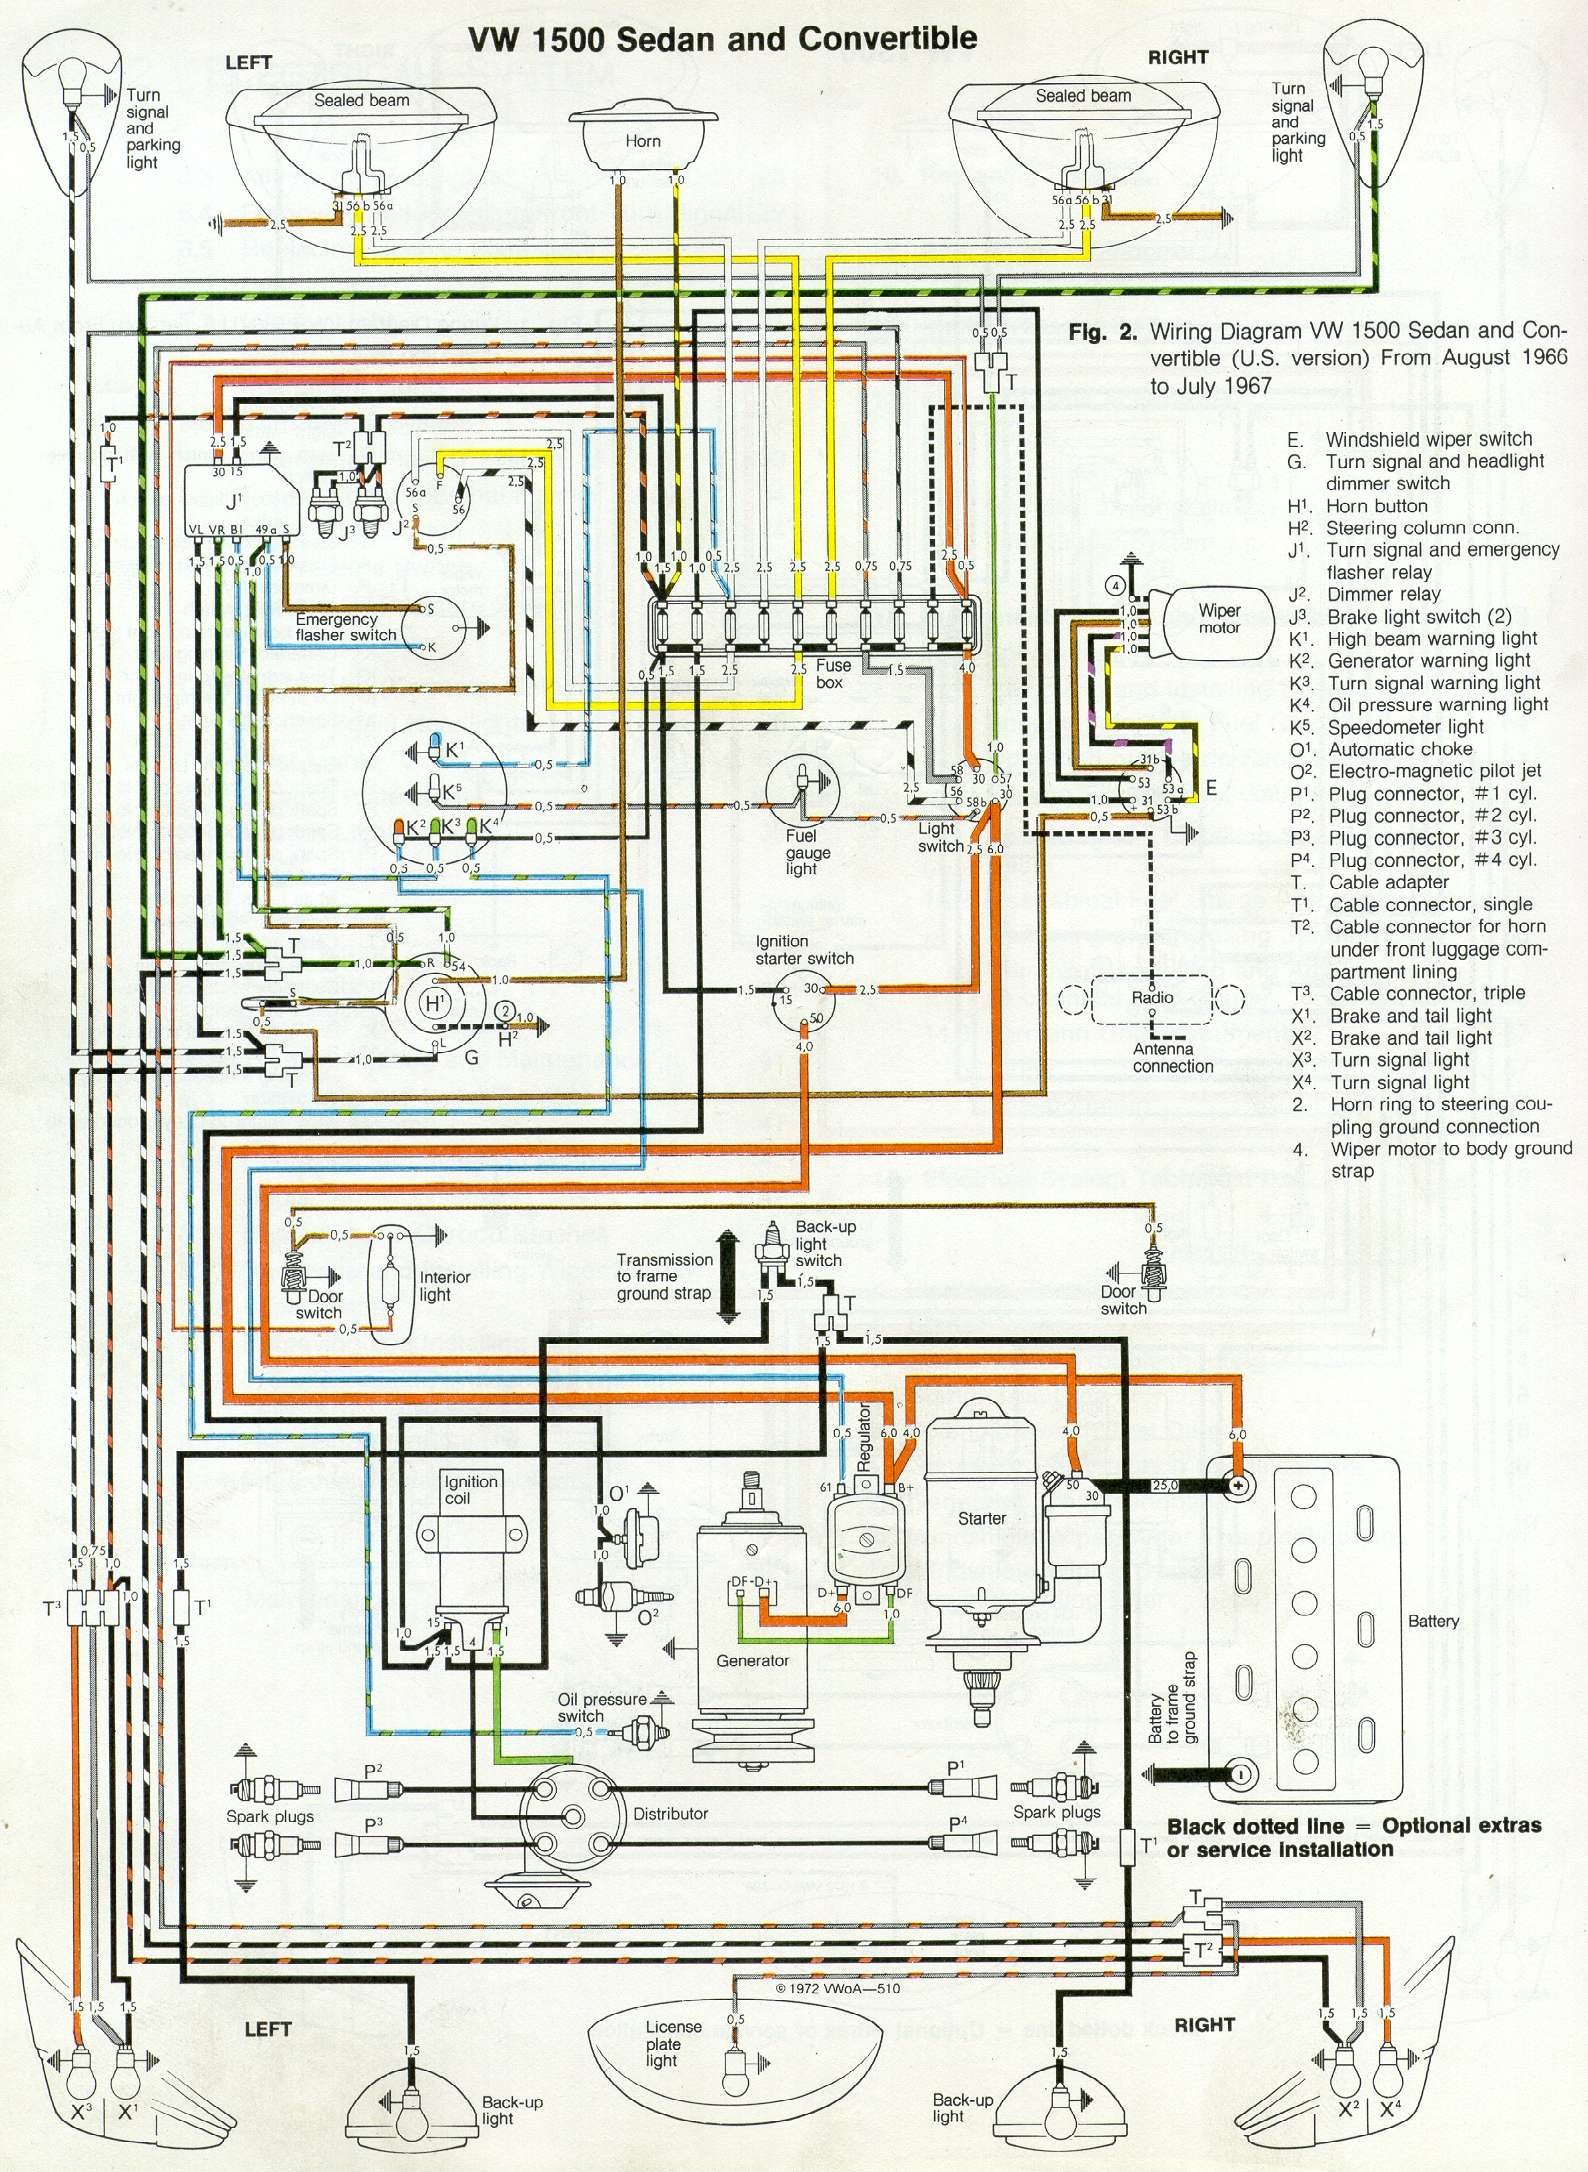 VW bug_1967 other diagrams vw buggy wiring diagram at panicattacktreatment.co